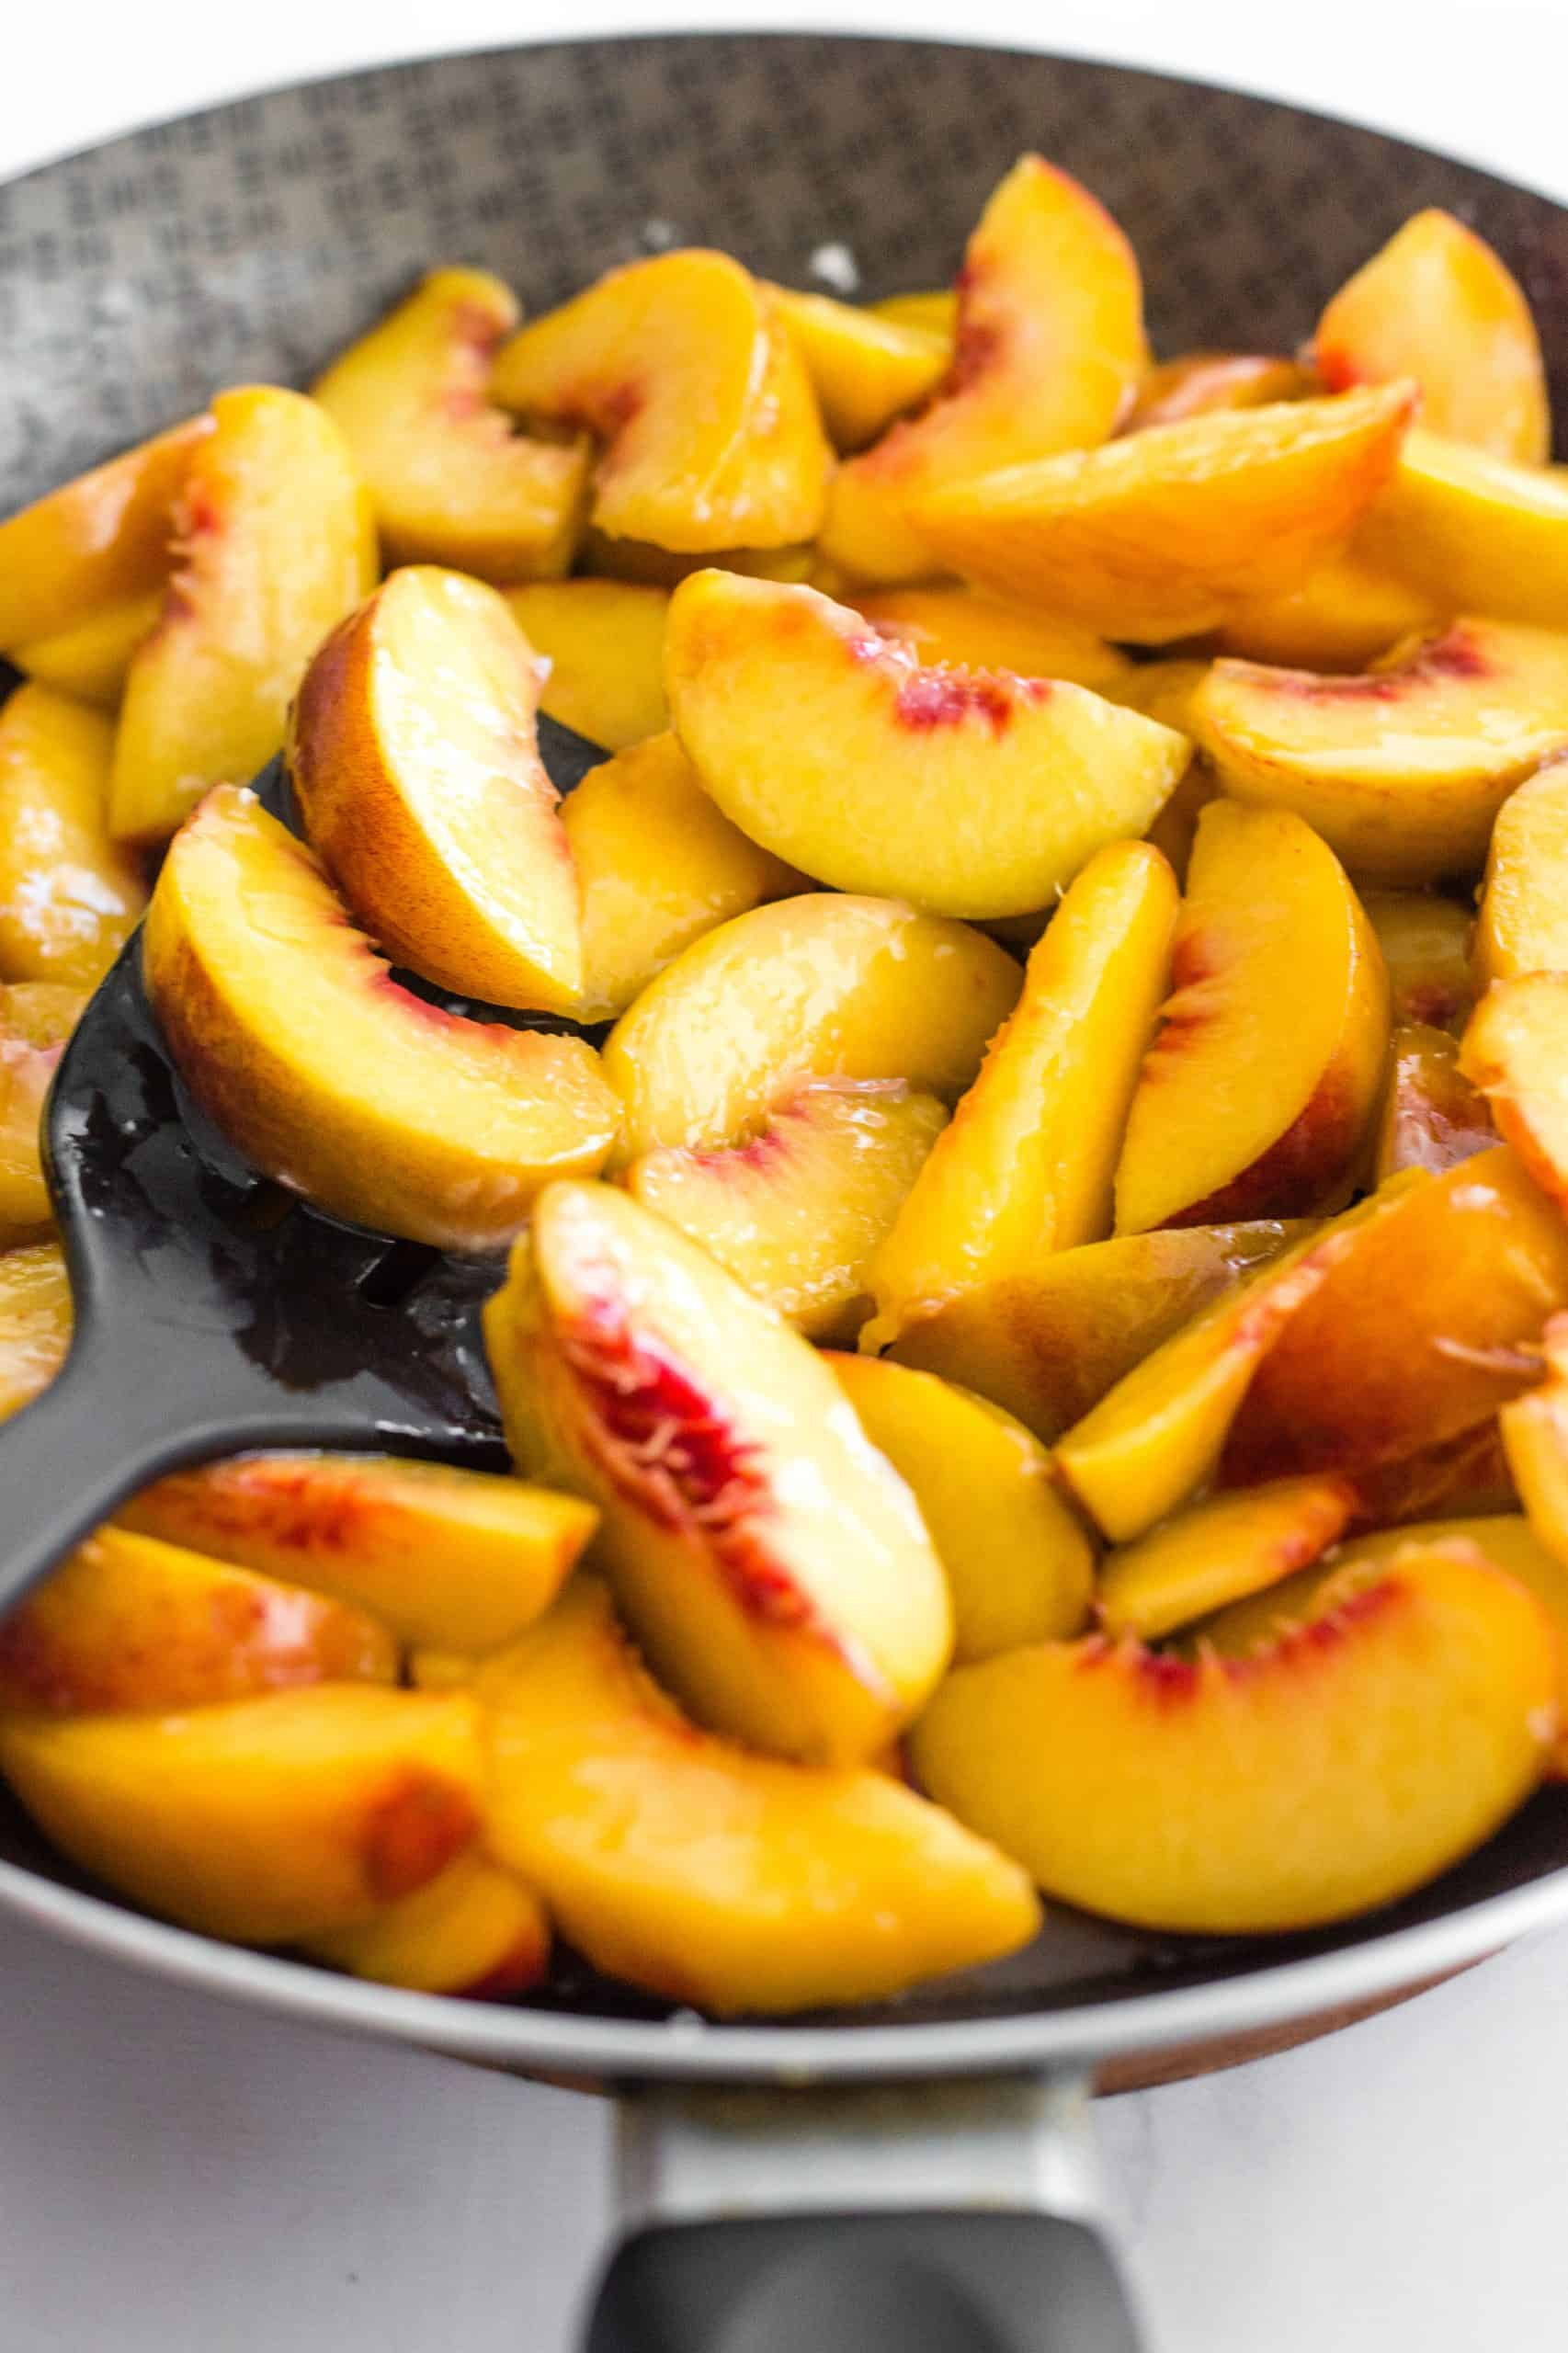 Cooked peach slices in a skillet with a spatula.